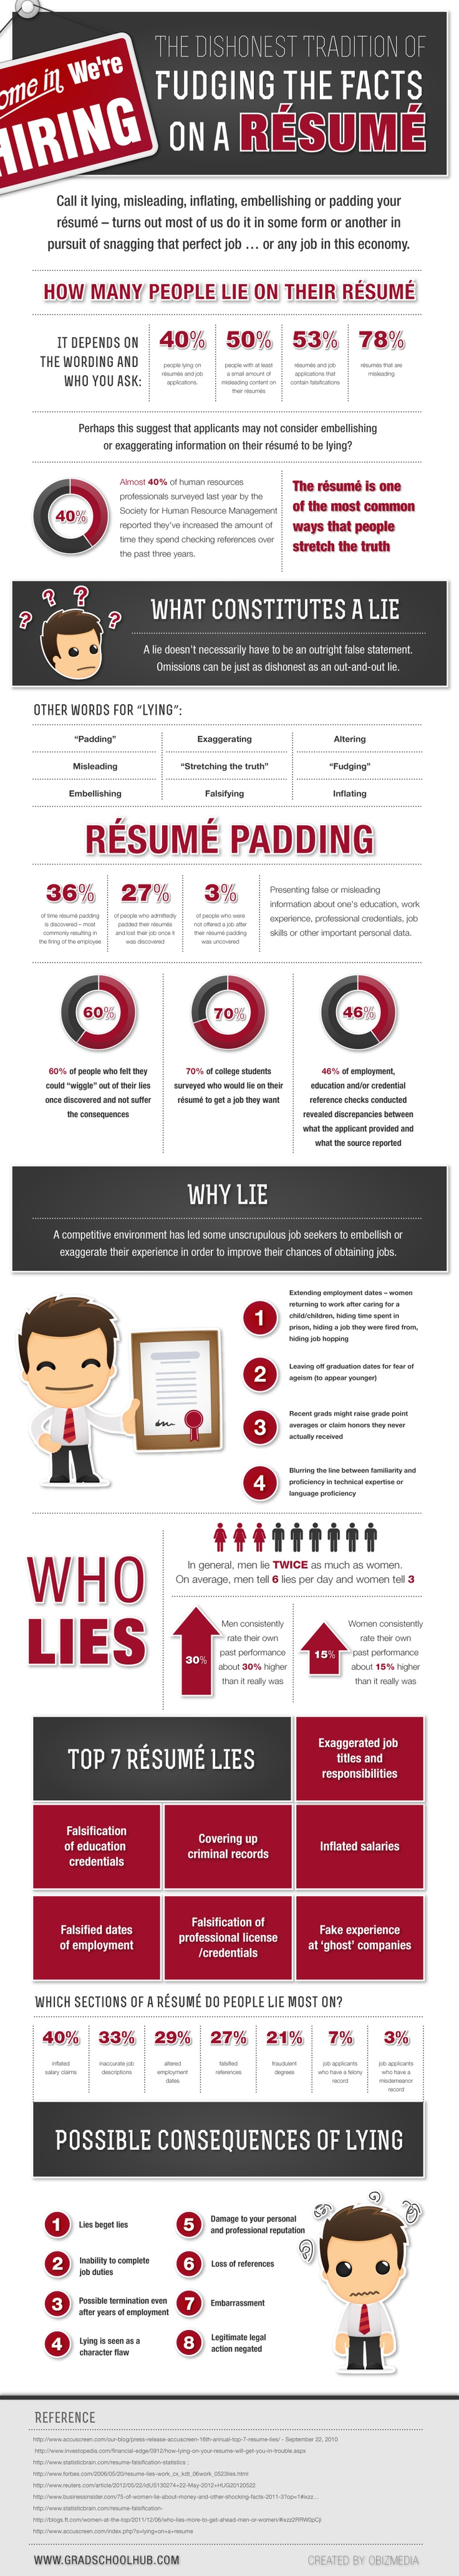 resumes lying on them infographic best